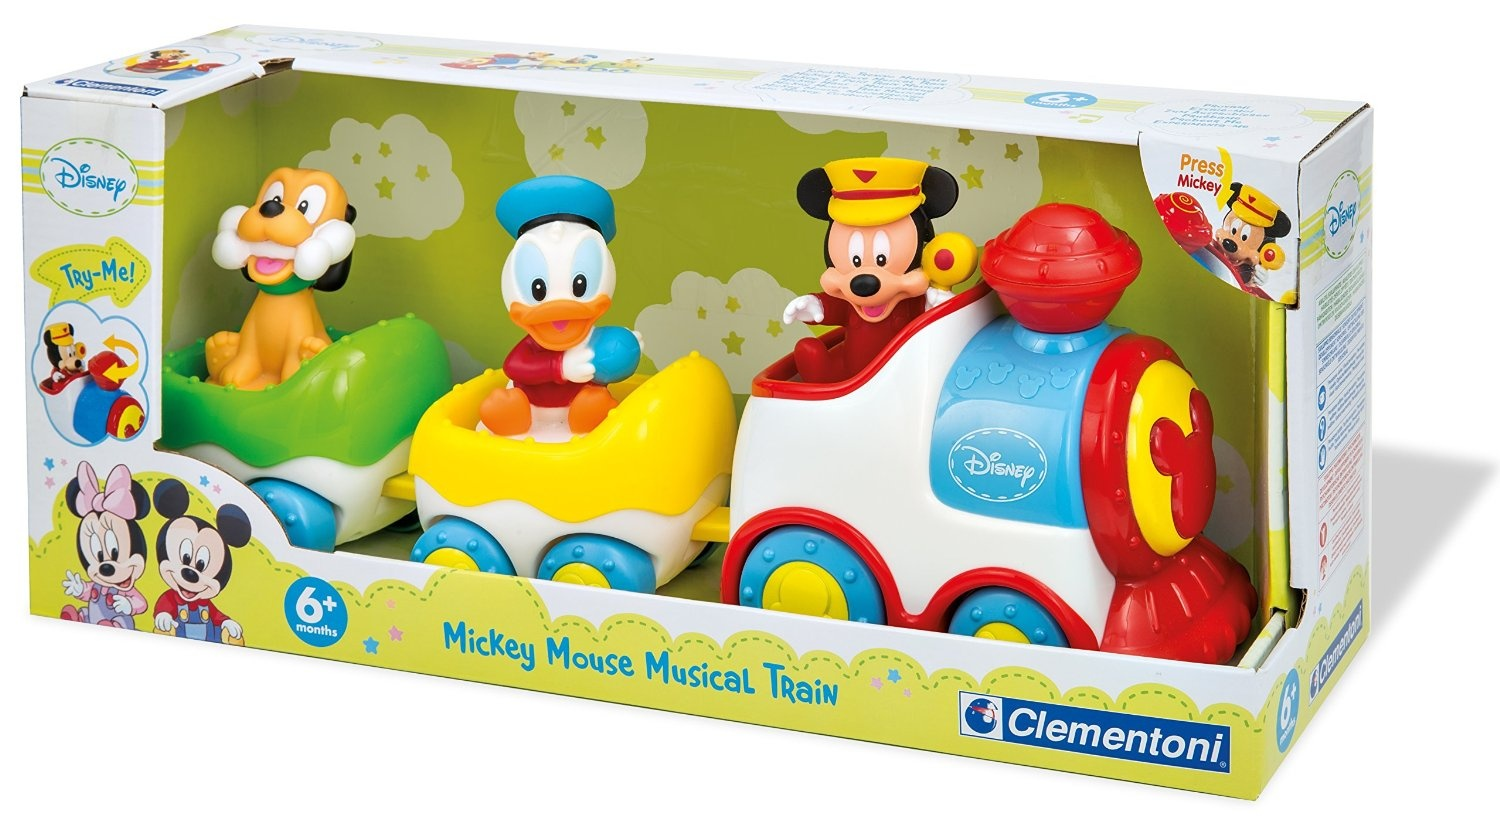 Clementoni 14361 Early Years Toy Mickey and Friends Musical Train by ...